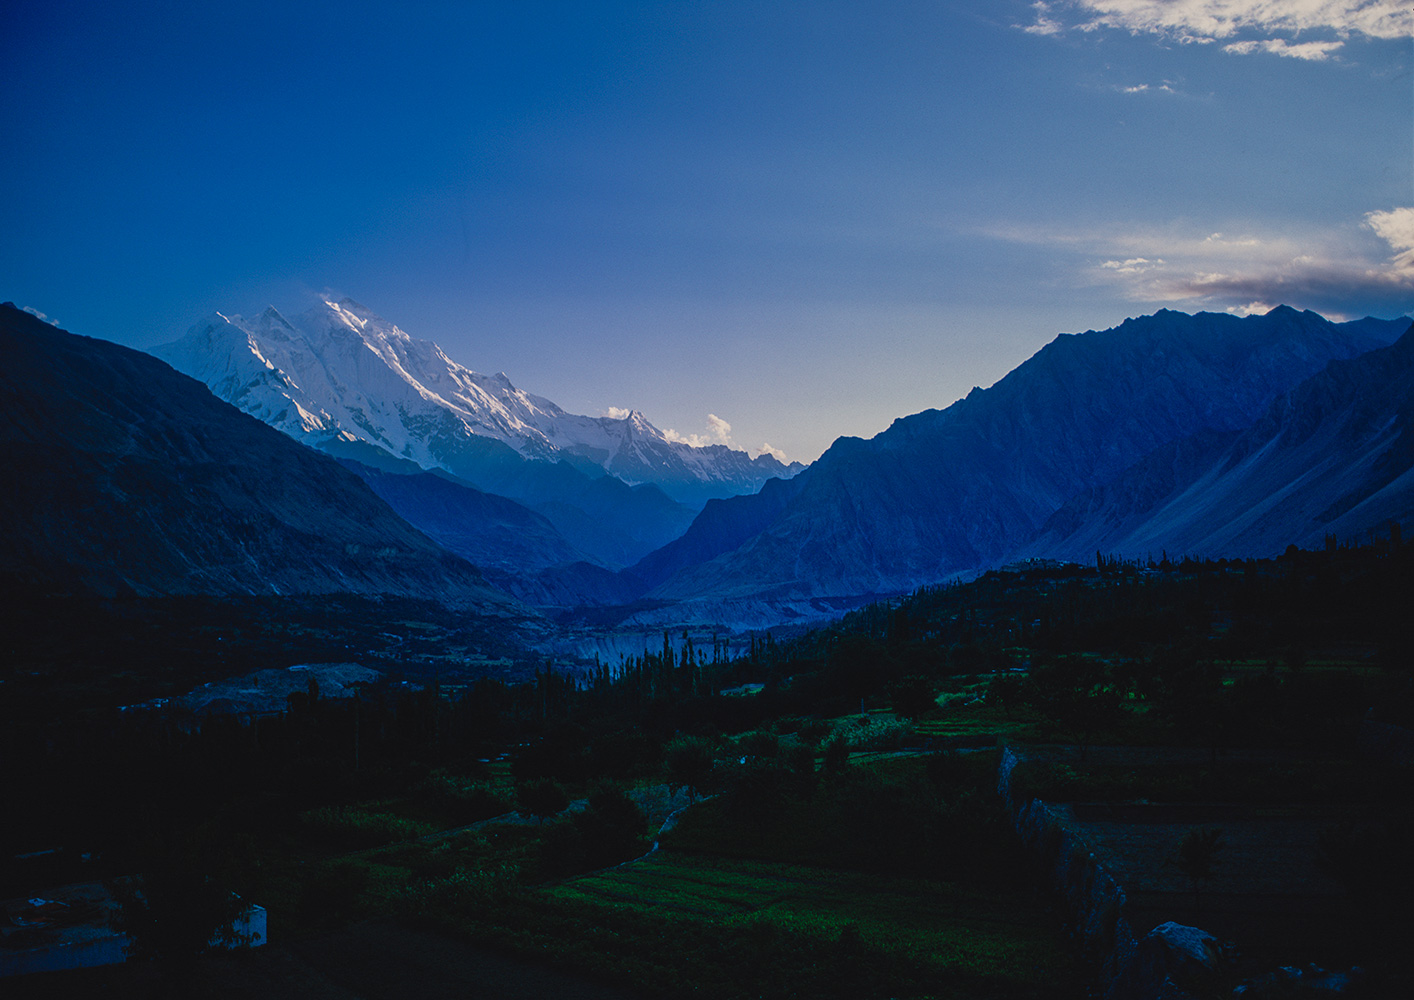 From Karimabad in Hunza